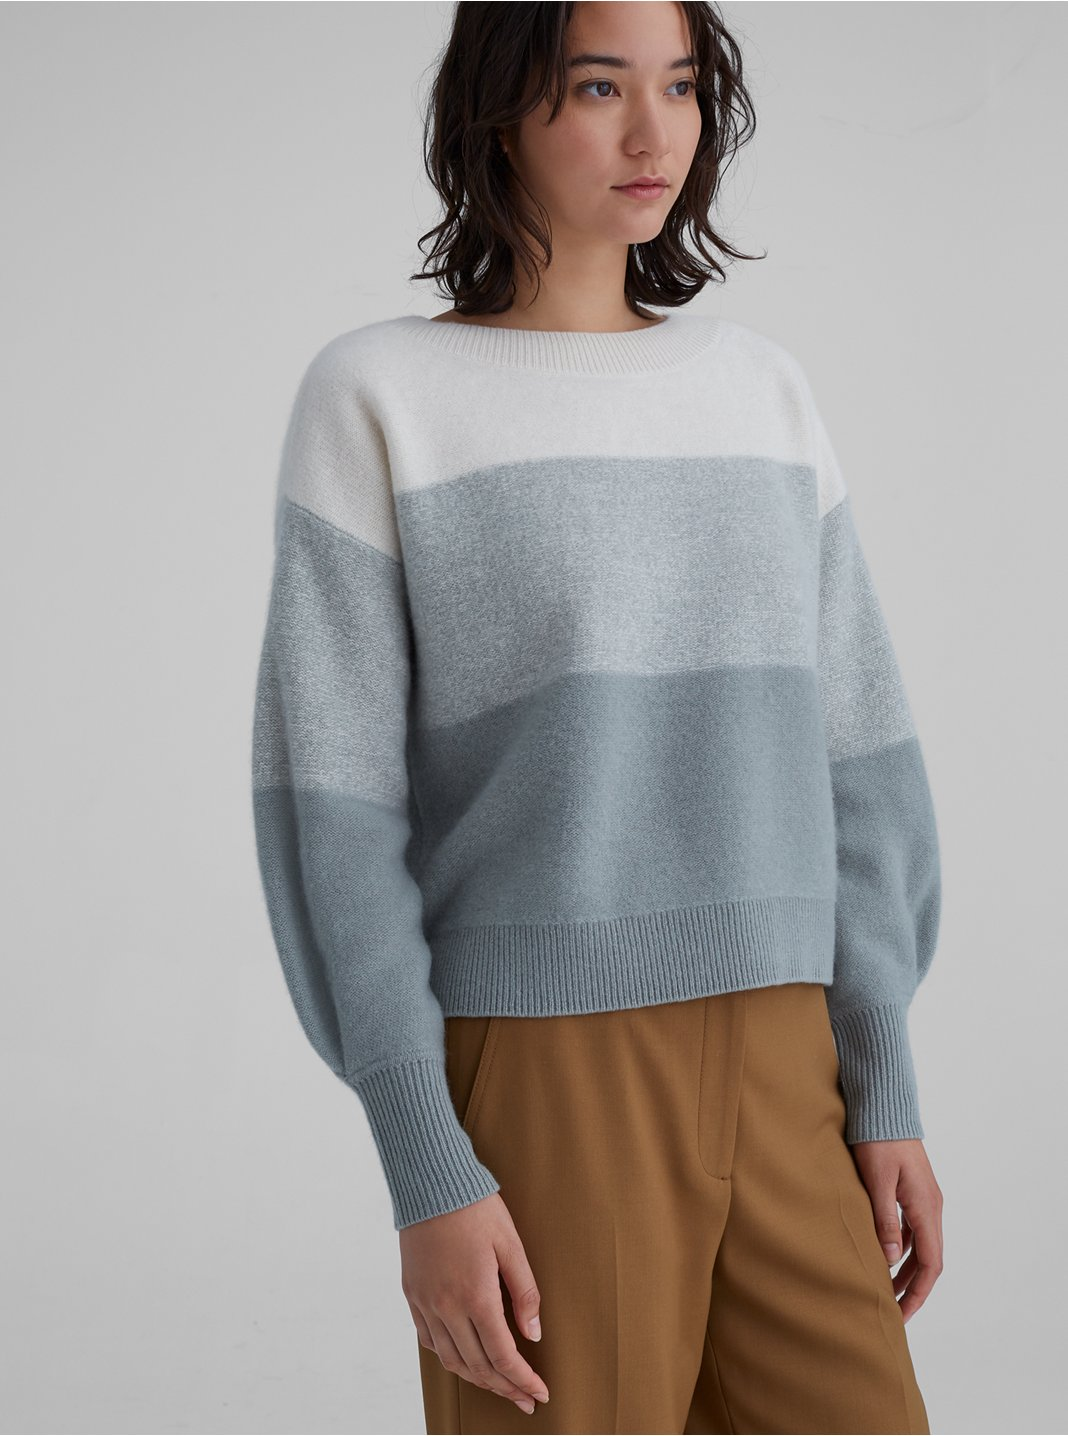 Striped Boiled Cashmere Boatneck Sweater